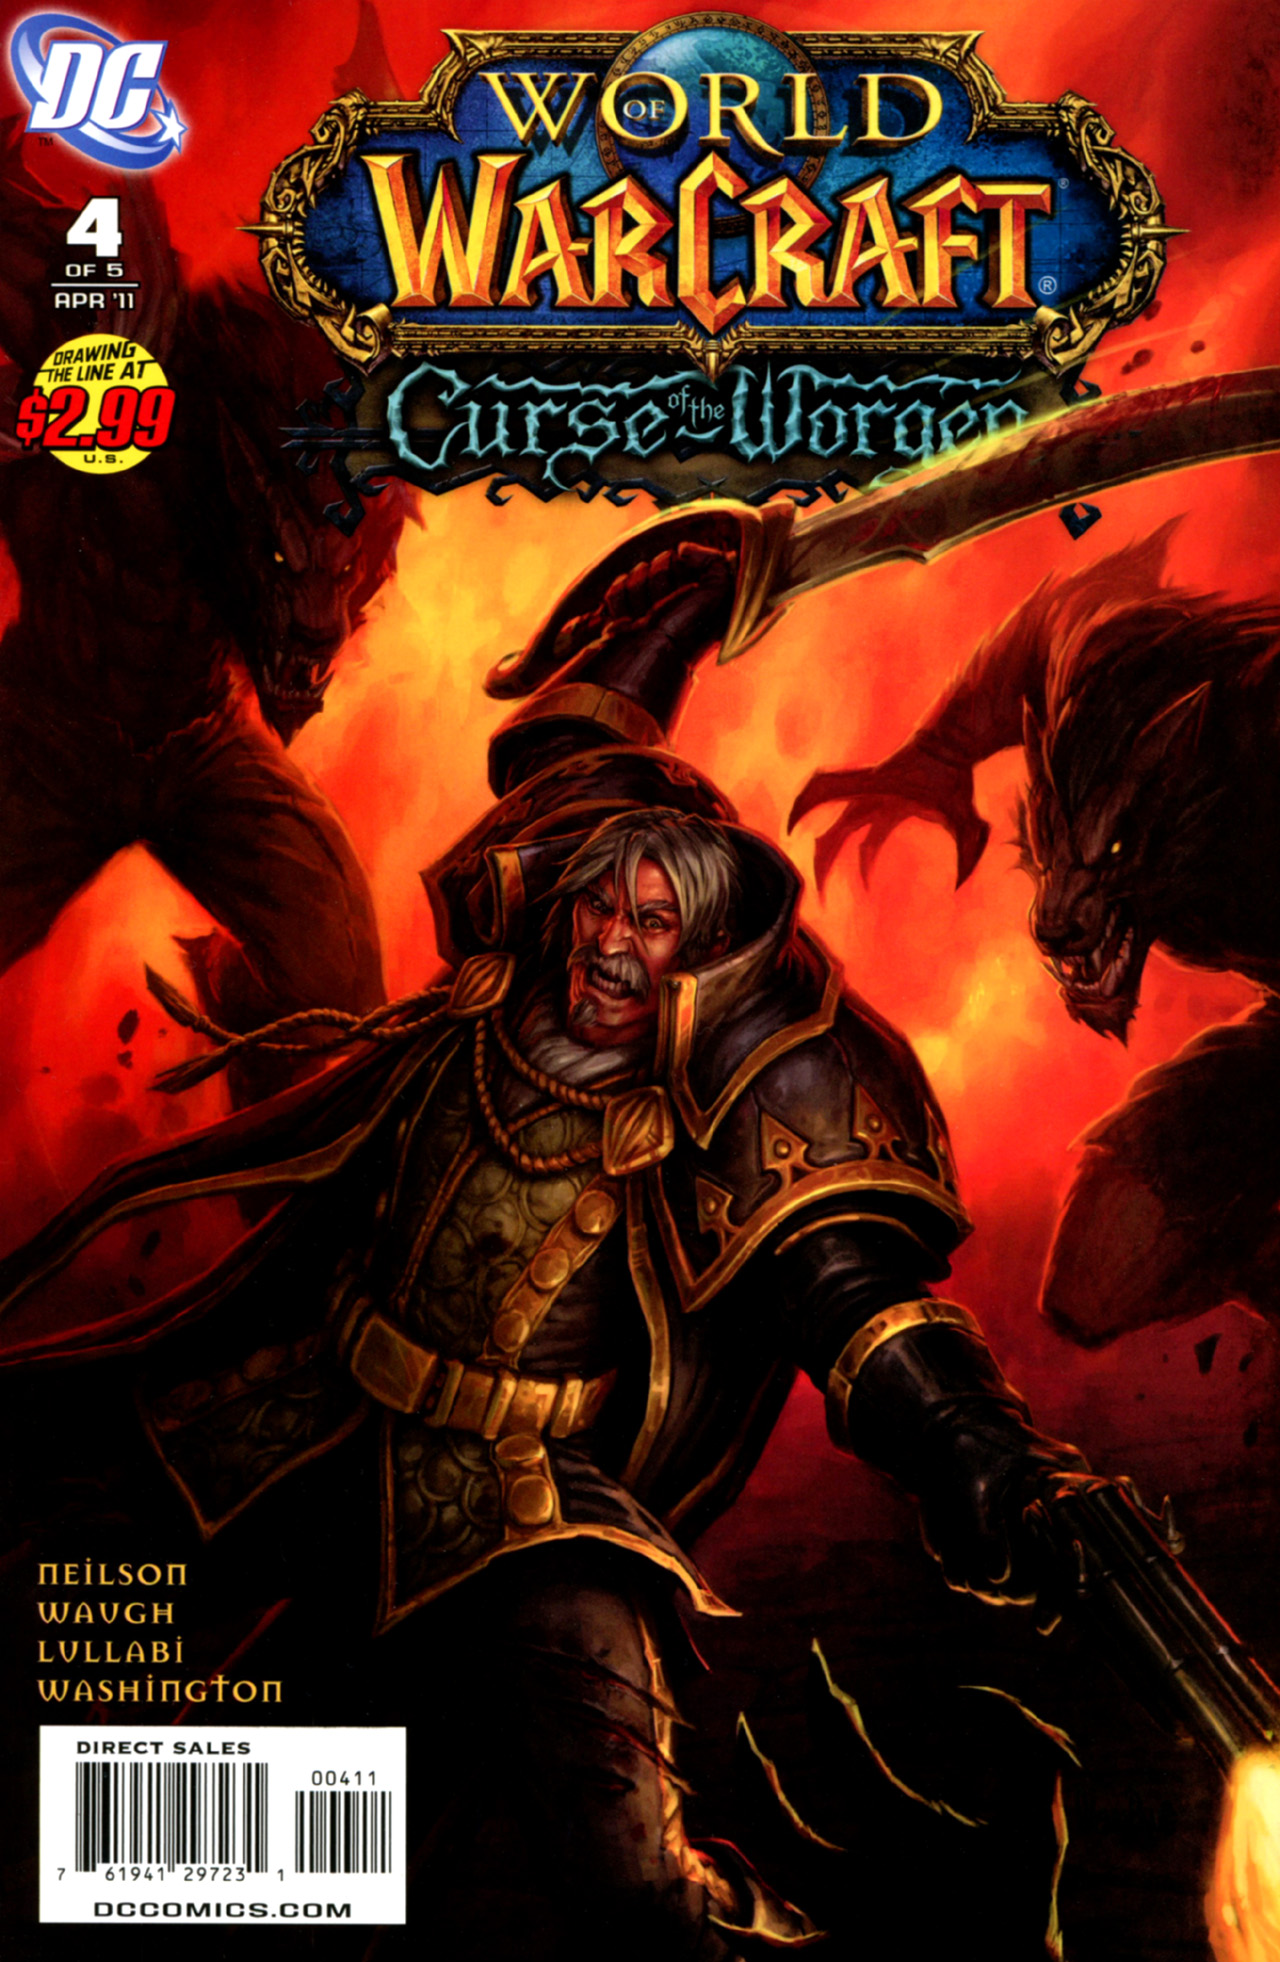 Read online World of Warcraft: Curse of the Worgen comic -  Issue #4 - 1